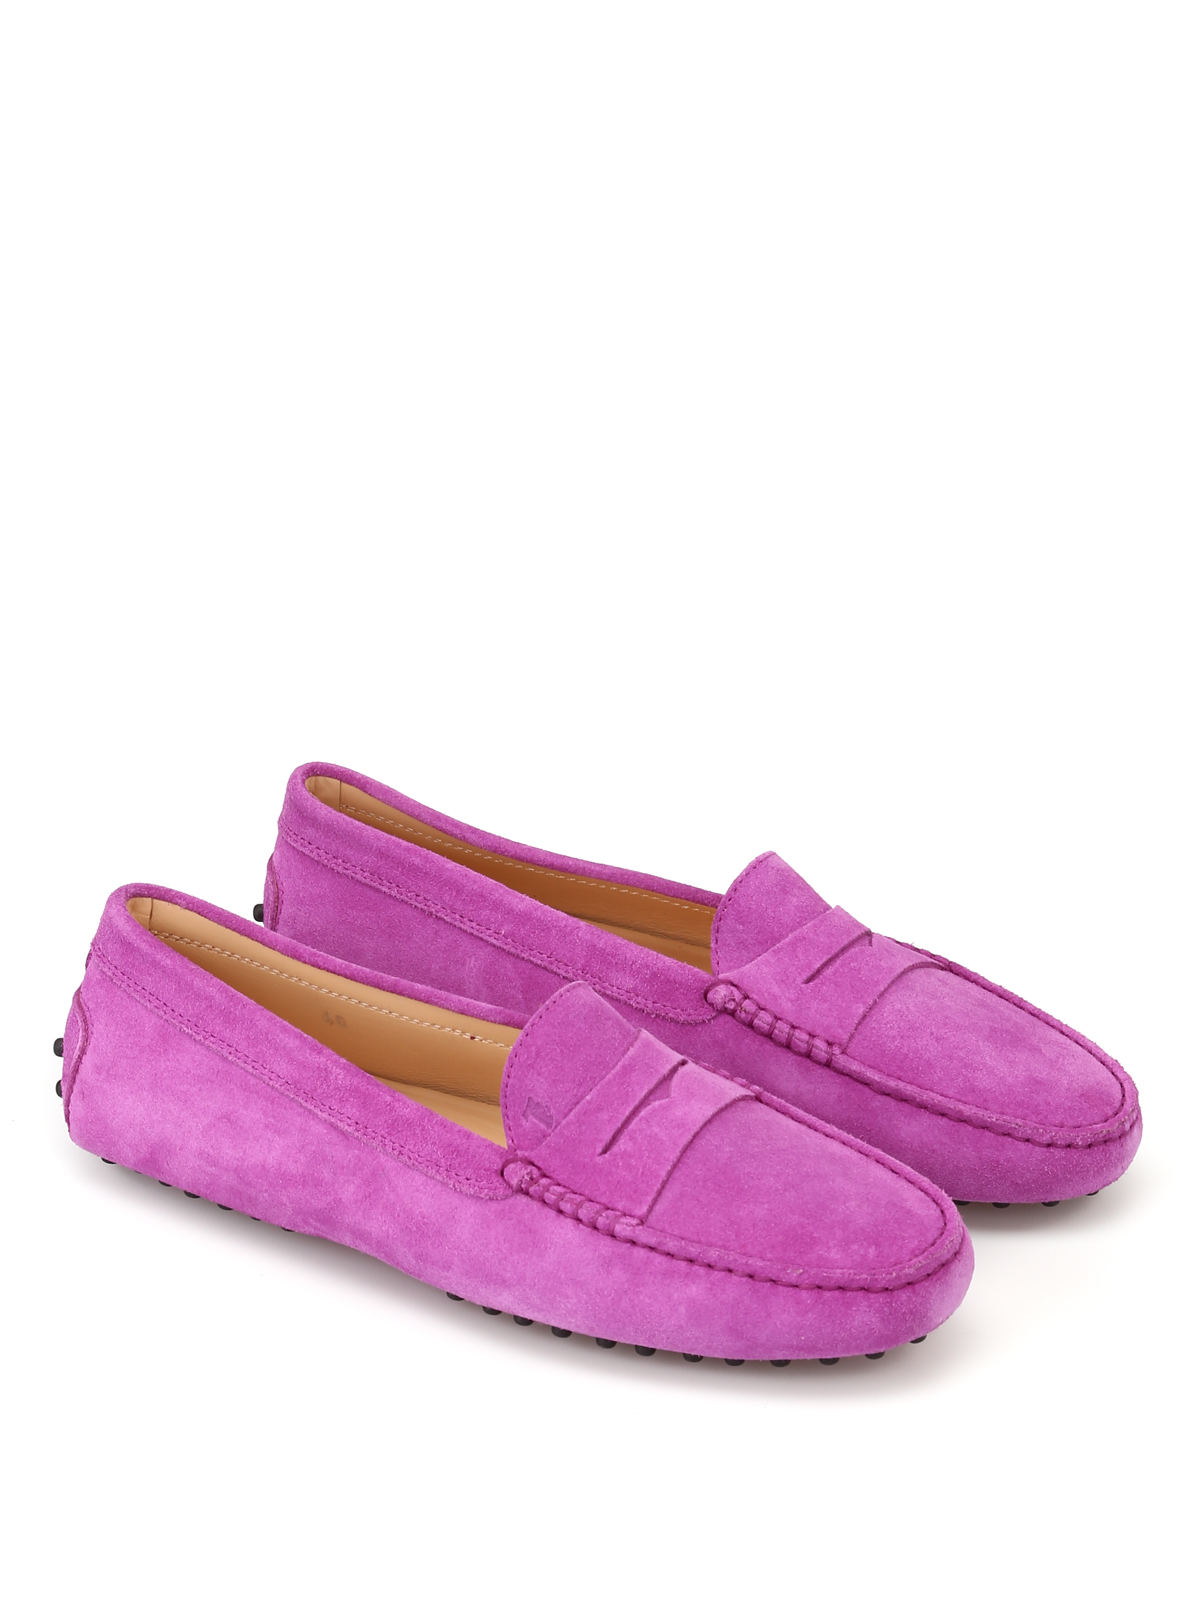 3d9178ea165 Tod S - Gommino violet suede driving shoes - Loafers   Slippers ...